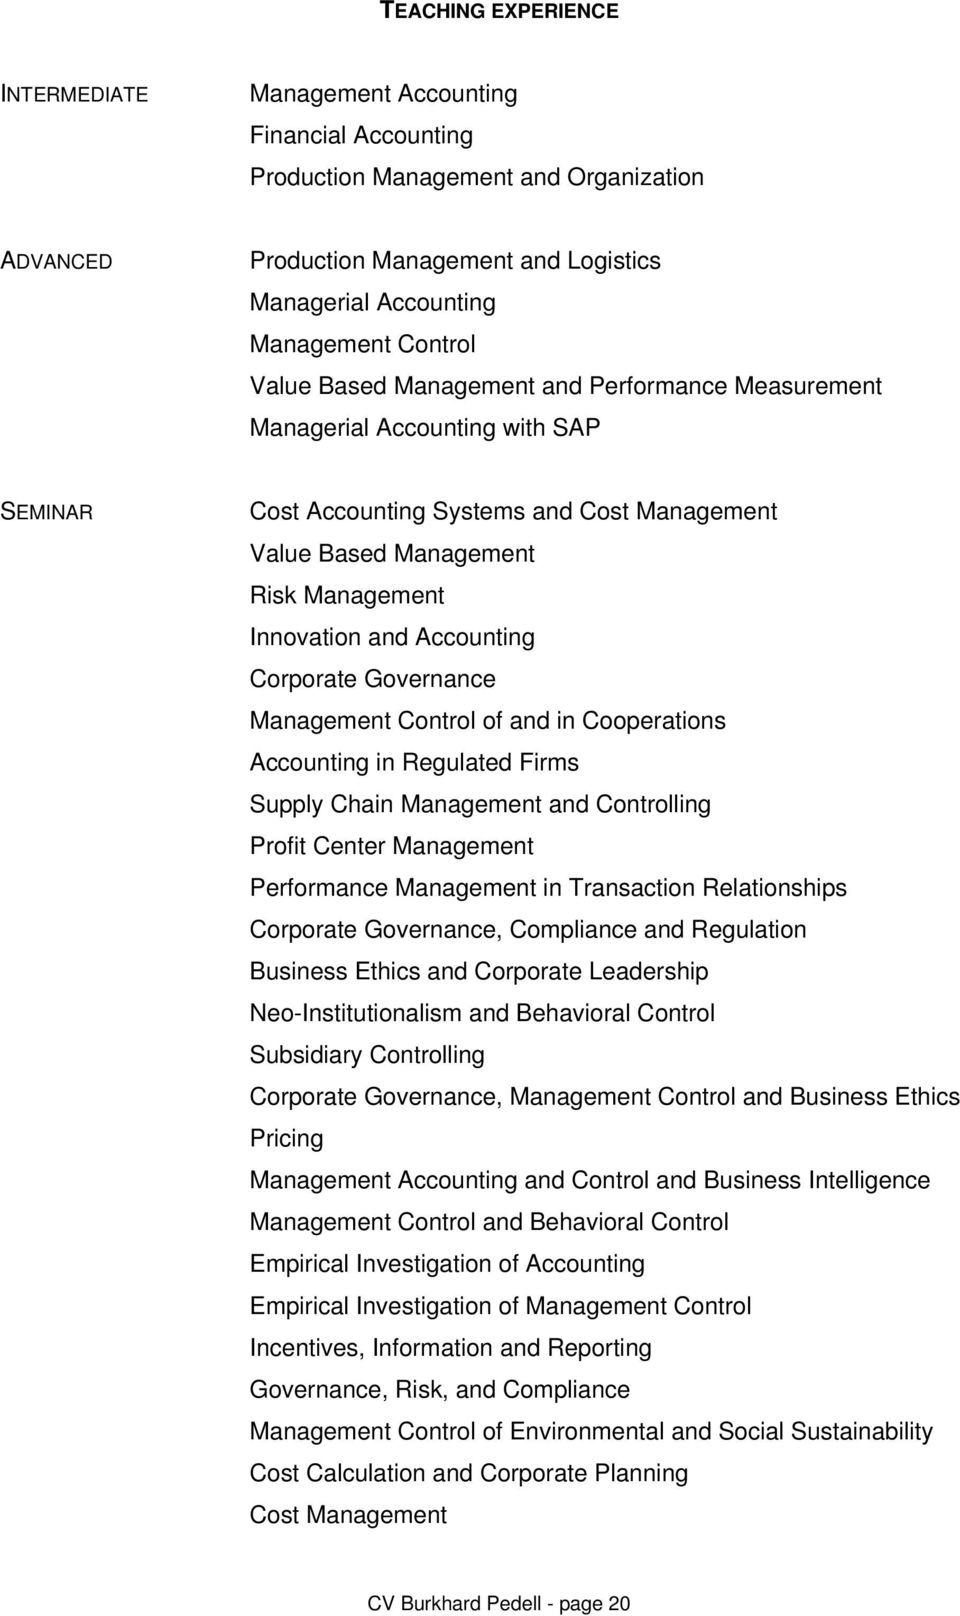 Accounting Corporate Governance Management Control of and in Cooperations Accounting in Regulated Firms Supply Chain Management and Controlling Profit Center Management Performance Management in